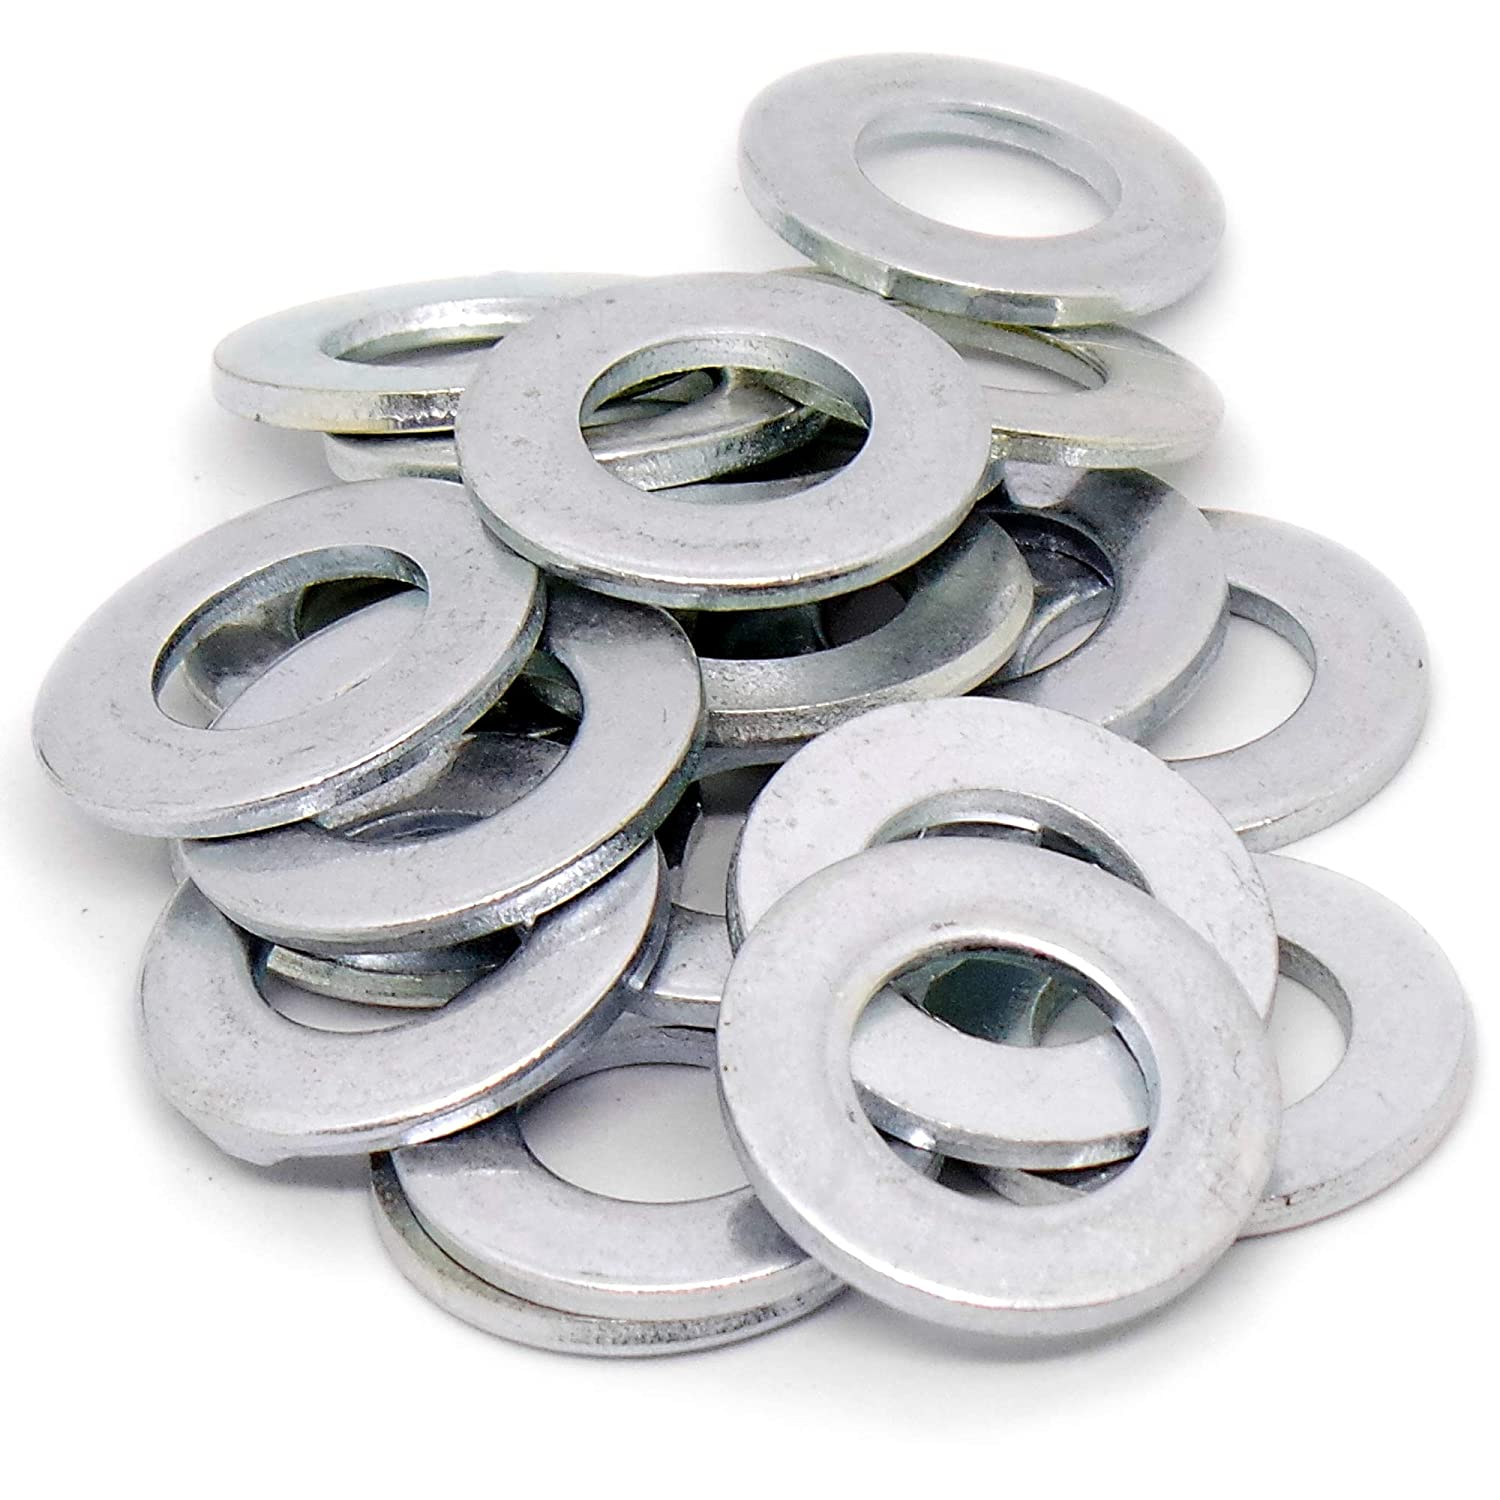 A2 Pack of 20 M18 Form A Flat Washer - Stainless Steel 18mm